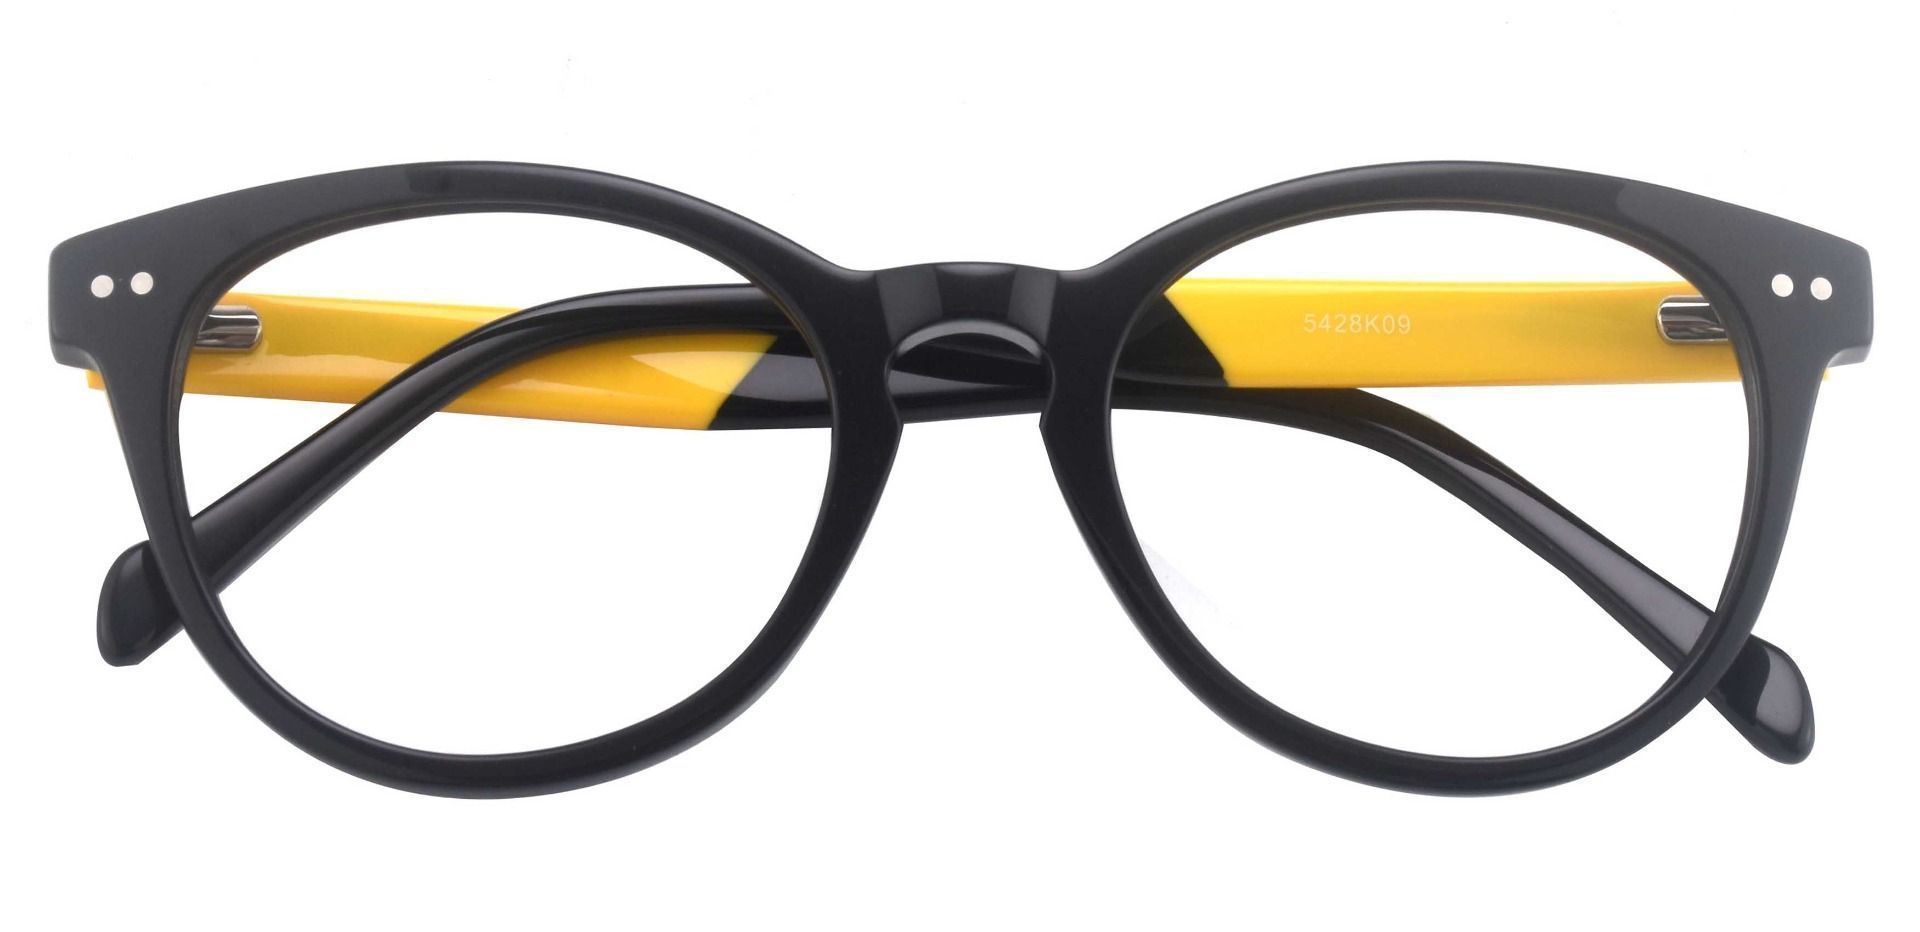 Forbes Oval Lined Bifocal Glasses - The Frame Is Black And Gold